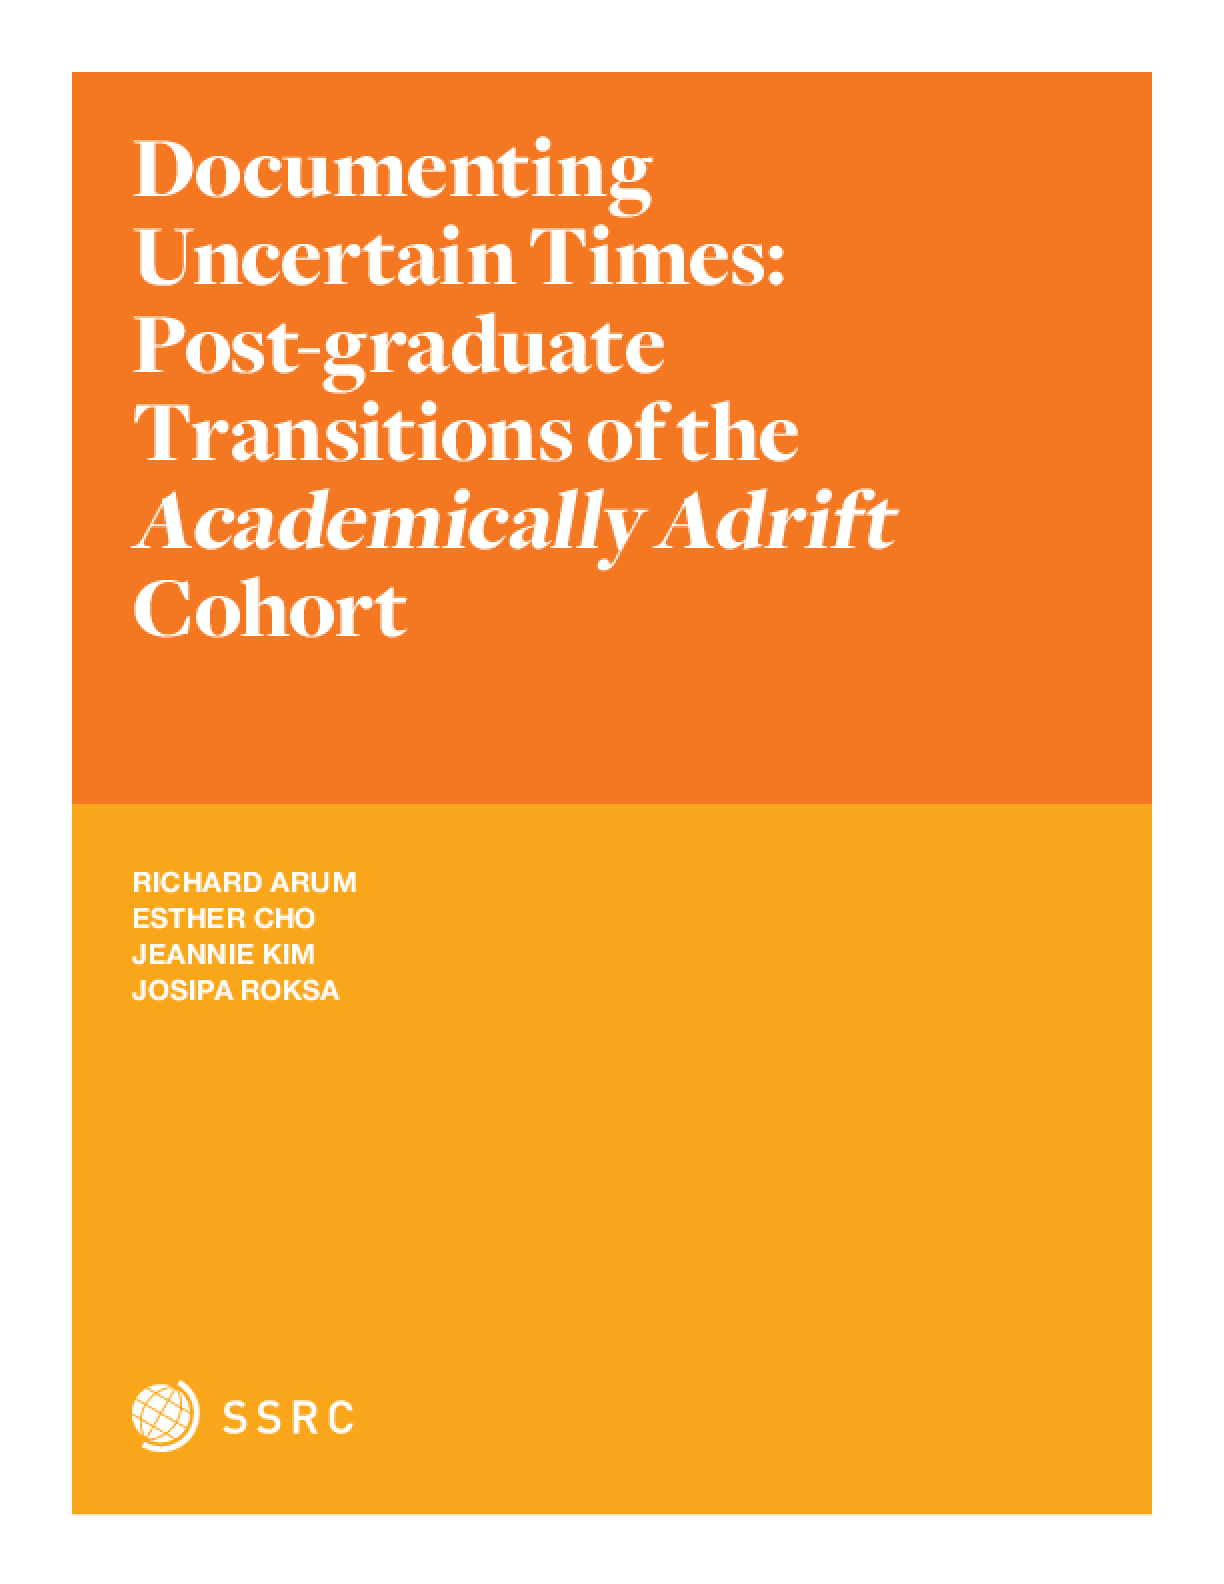 Documenting Uncertain Times: Postgraduate Transitions of the Academically Adrift Cohort